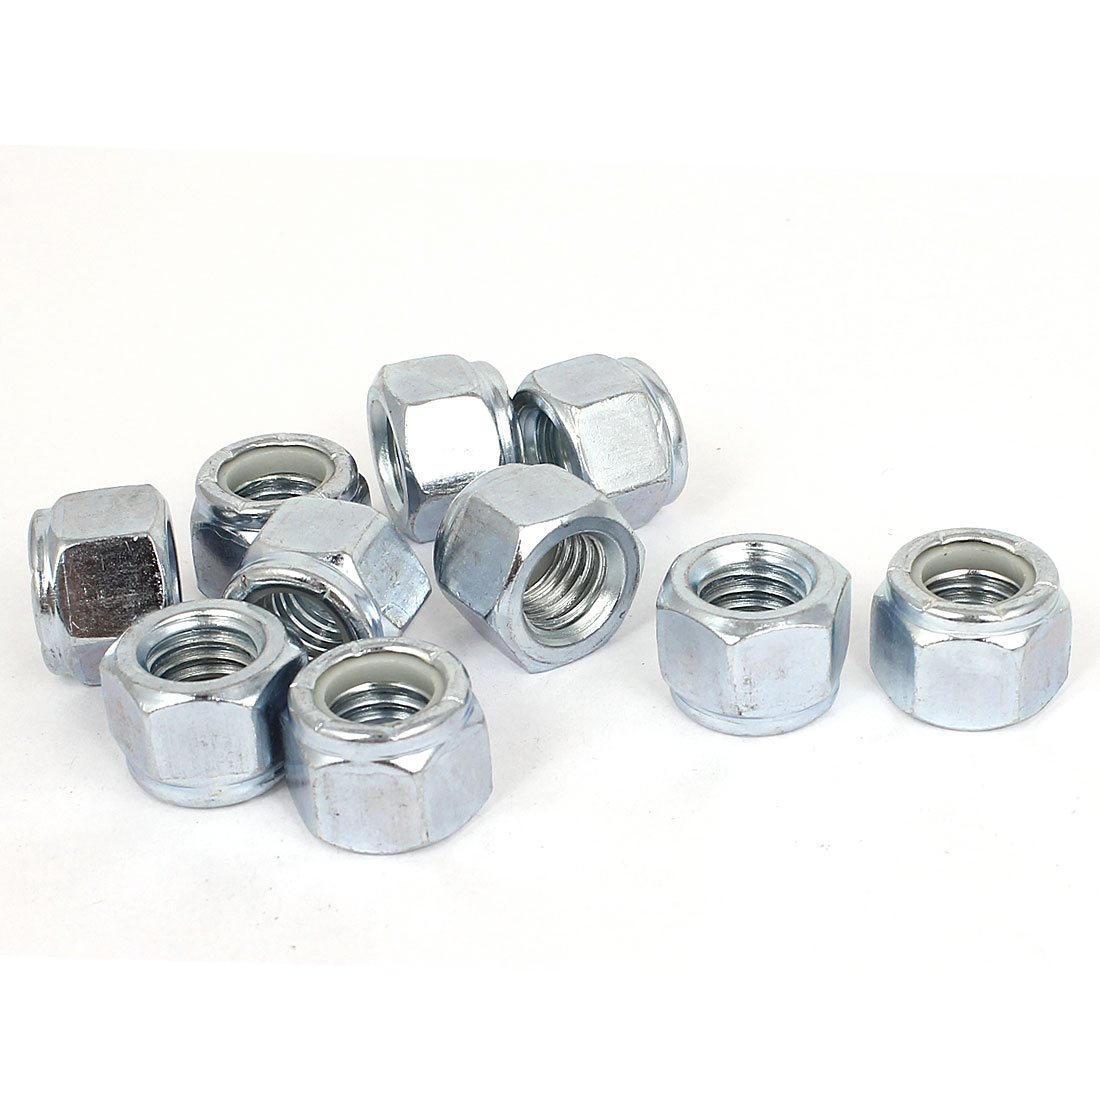 "10pcs Zinc Plated Nylock Self-Locking Nylon Insert Hex Lock Nuts 1/2""-13"